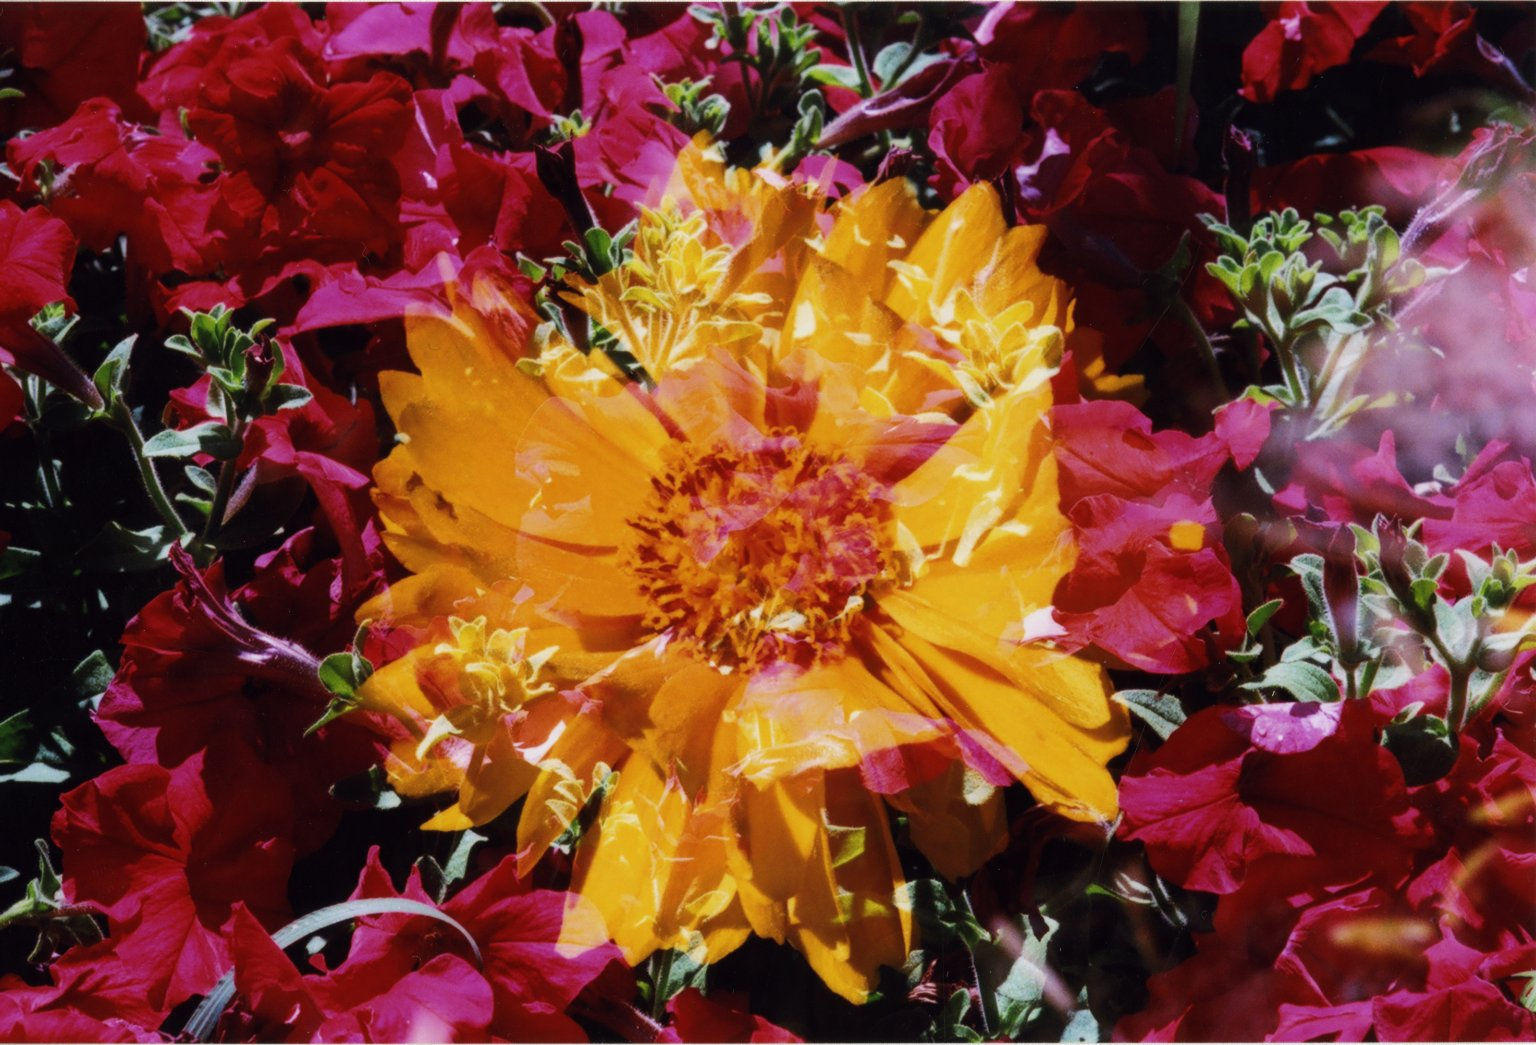 Double Exposure - Close up of yellow flower over red flowers